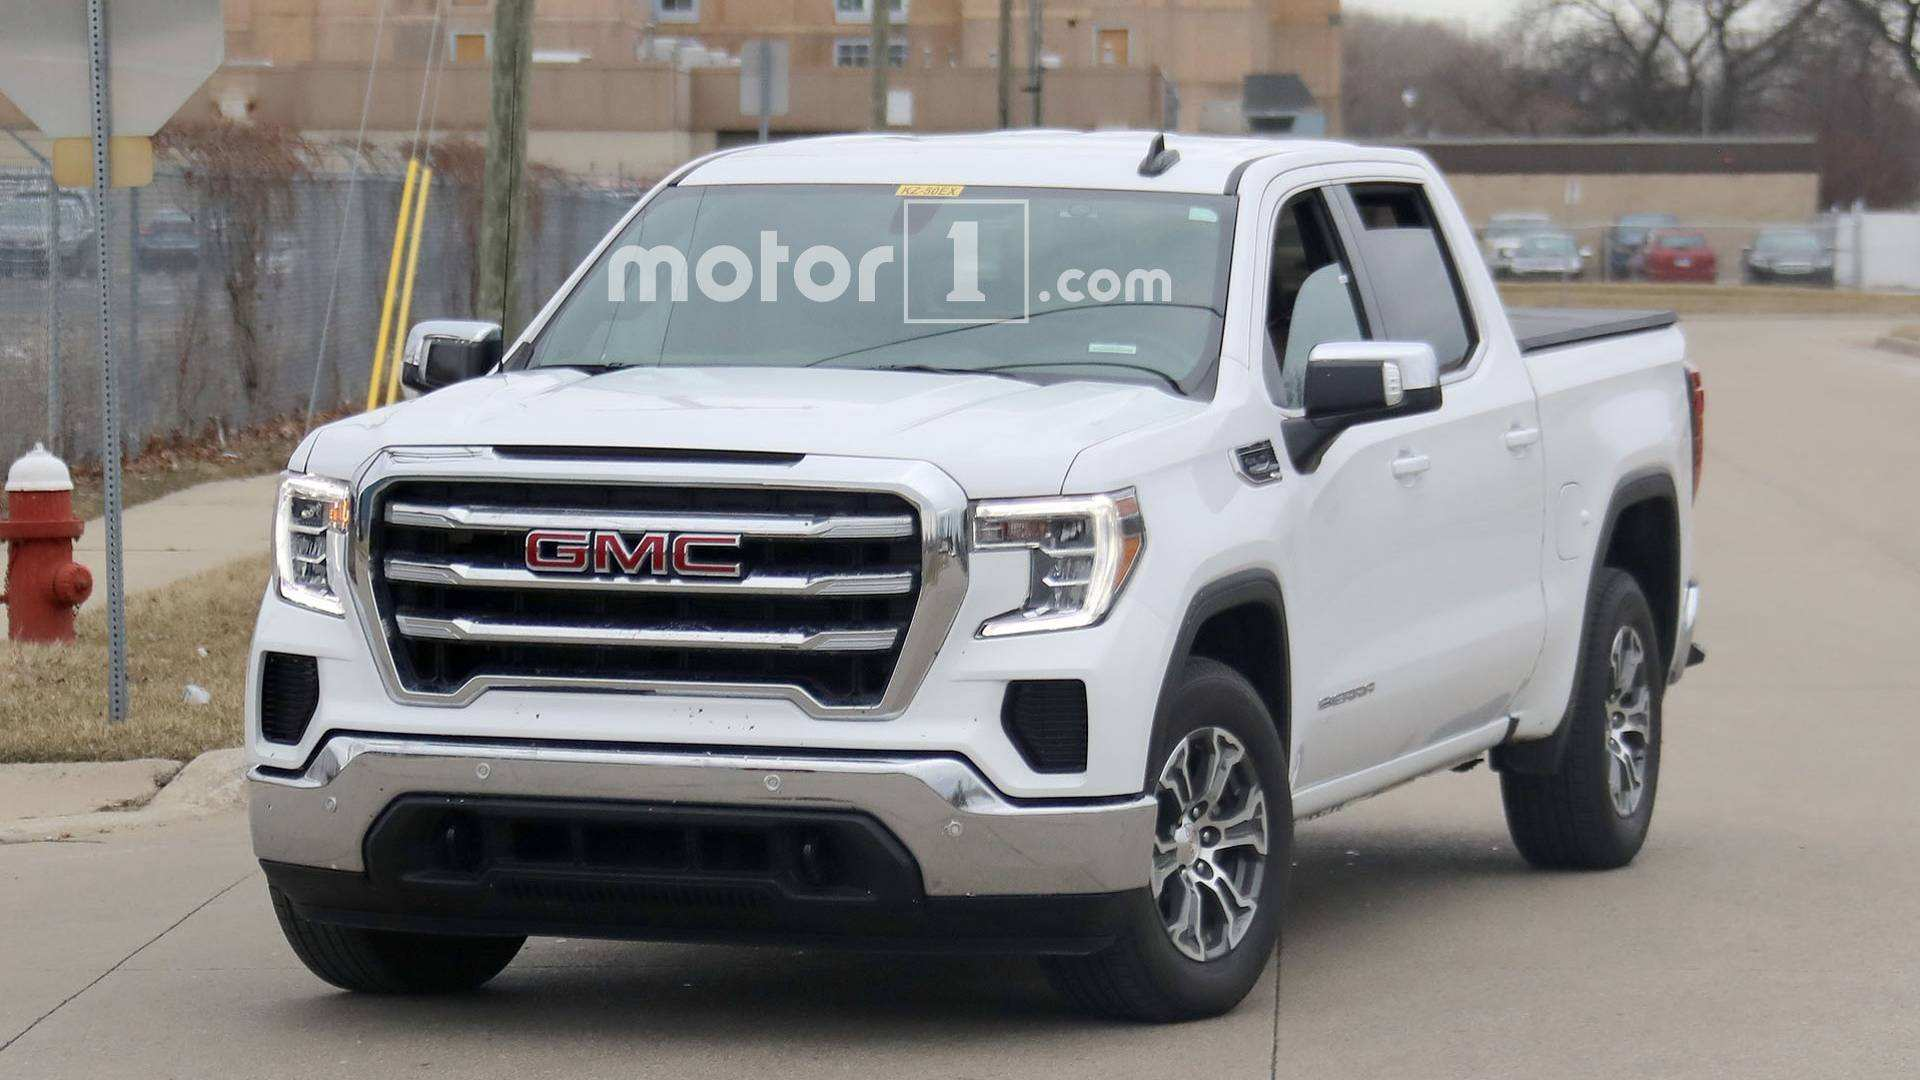 98 The Best 2019 Gmc Sierra Release Date Price And Release Date